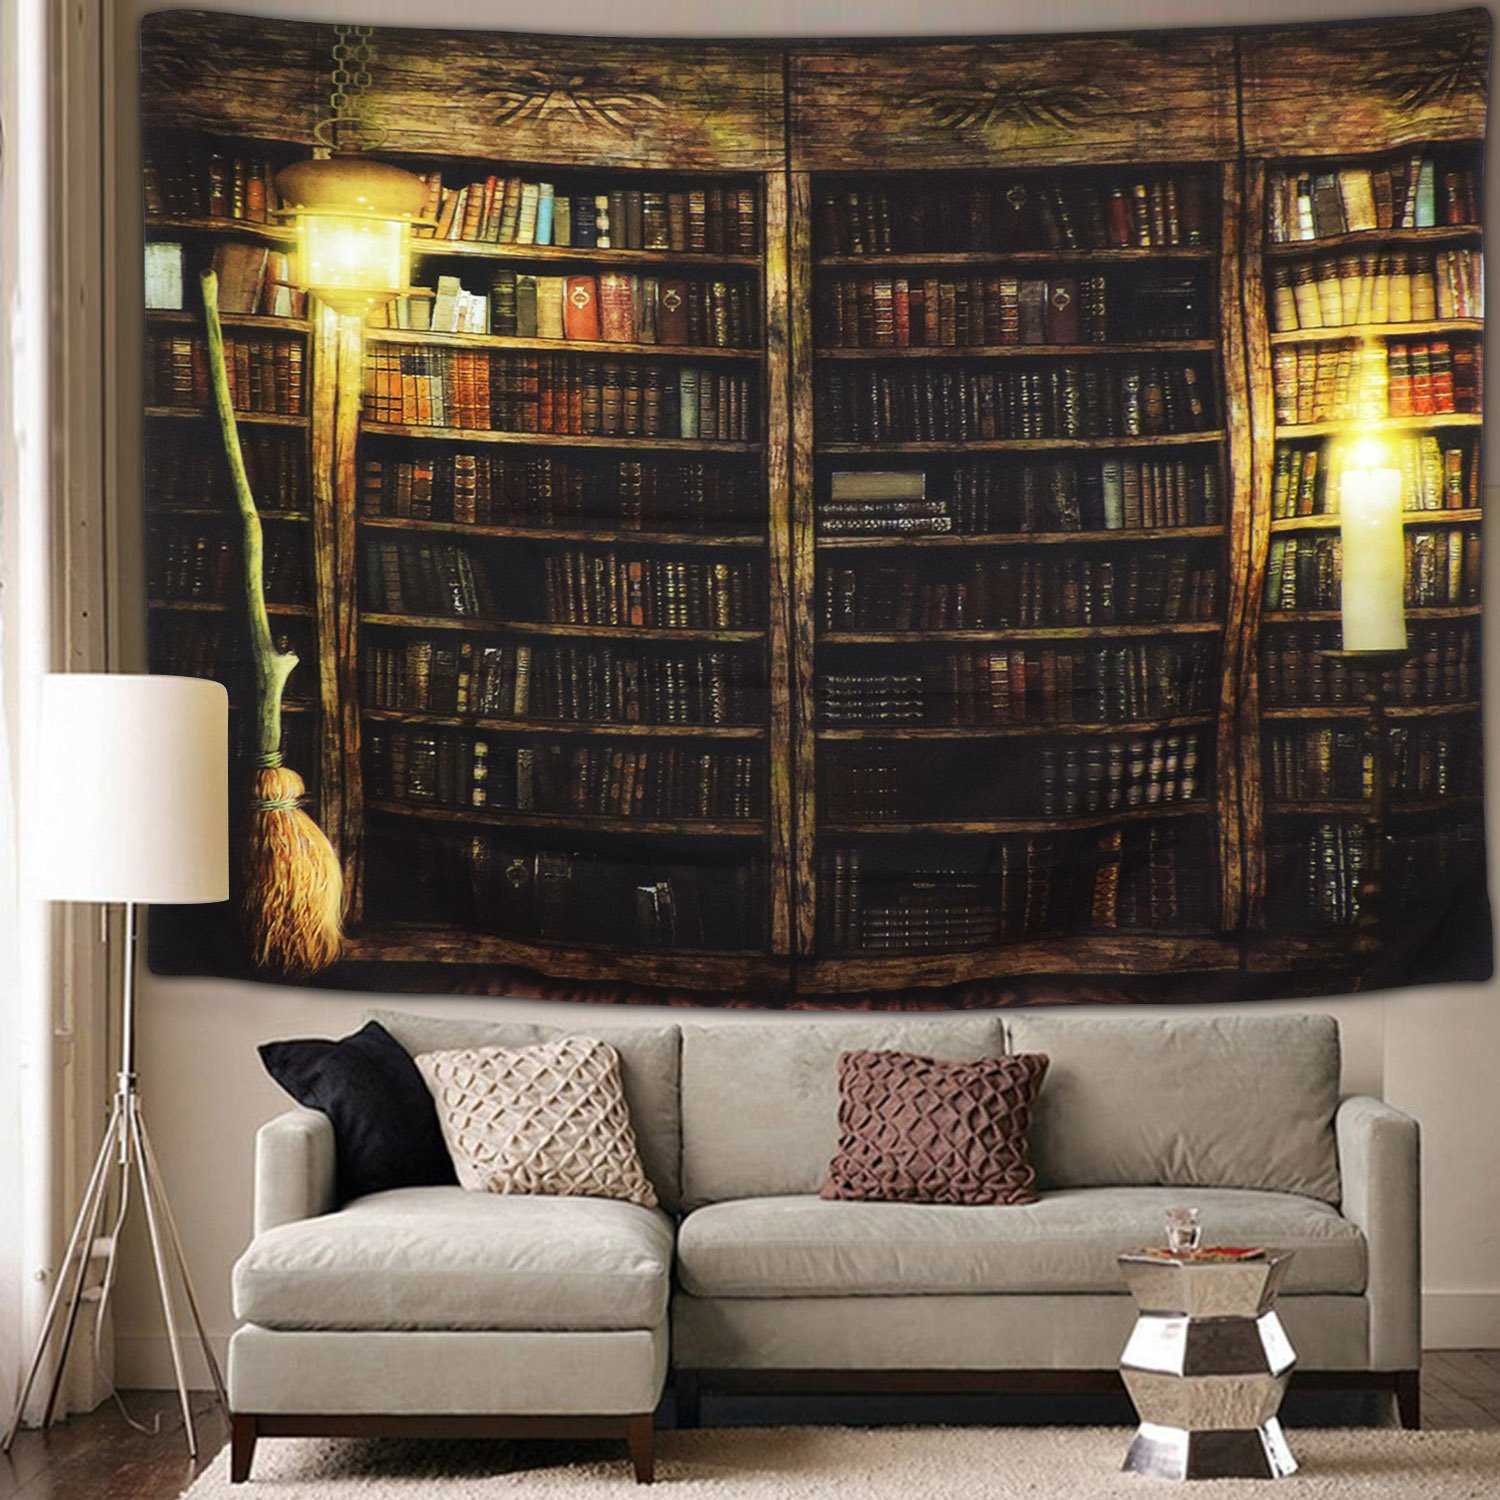 Sunm Boutique Vintage Library Bookshelf Tapestry Wall Hanging Study Room Picture Art Print Tapestry Retro Bookshelf Wall Art Bohemian Hippie Wall Tapestries for Bedroom College Dorm Decor